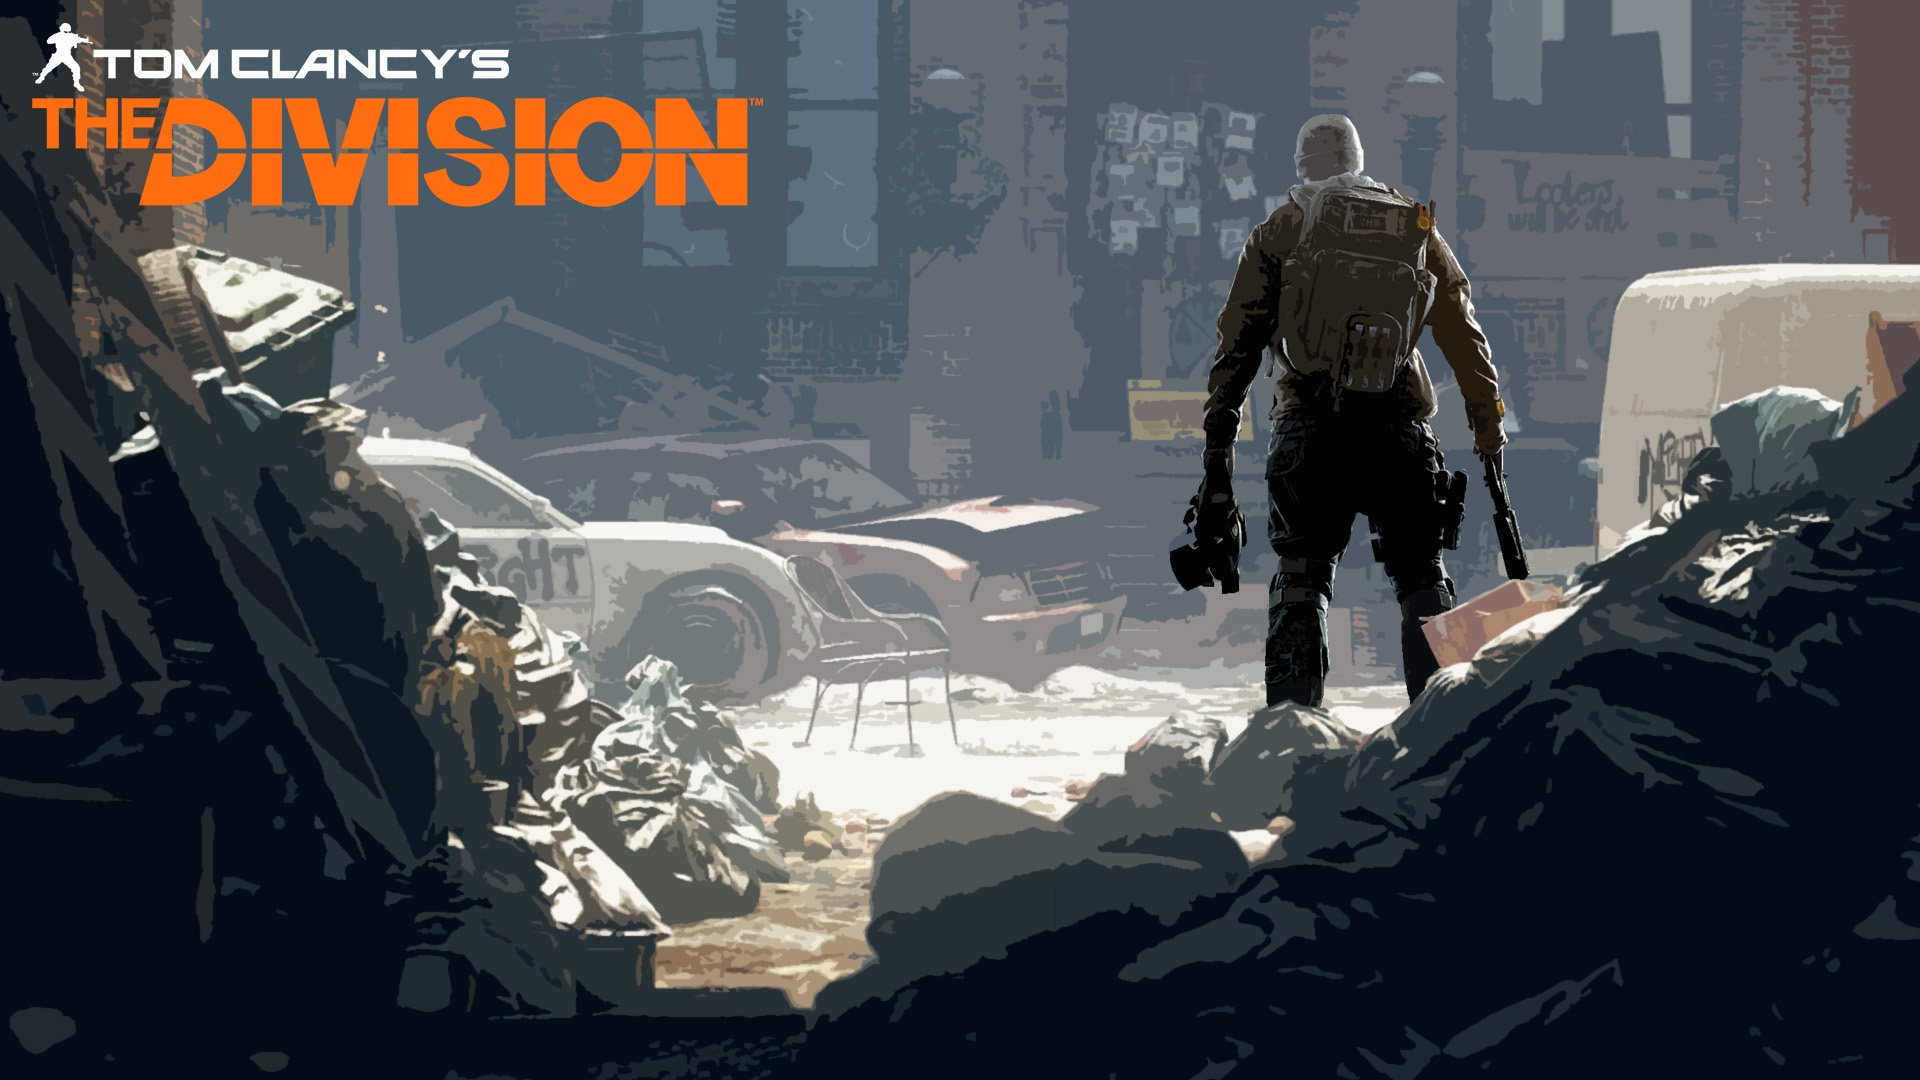 The Division Iphone Wallpaper Tom Clancys Tactical 1920x1080